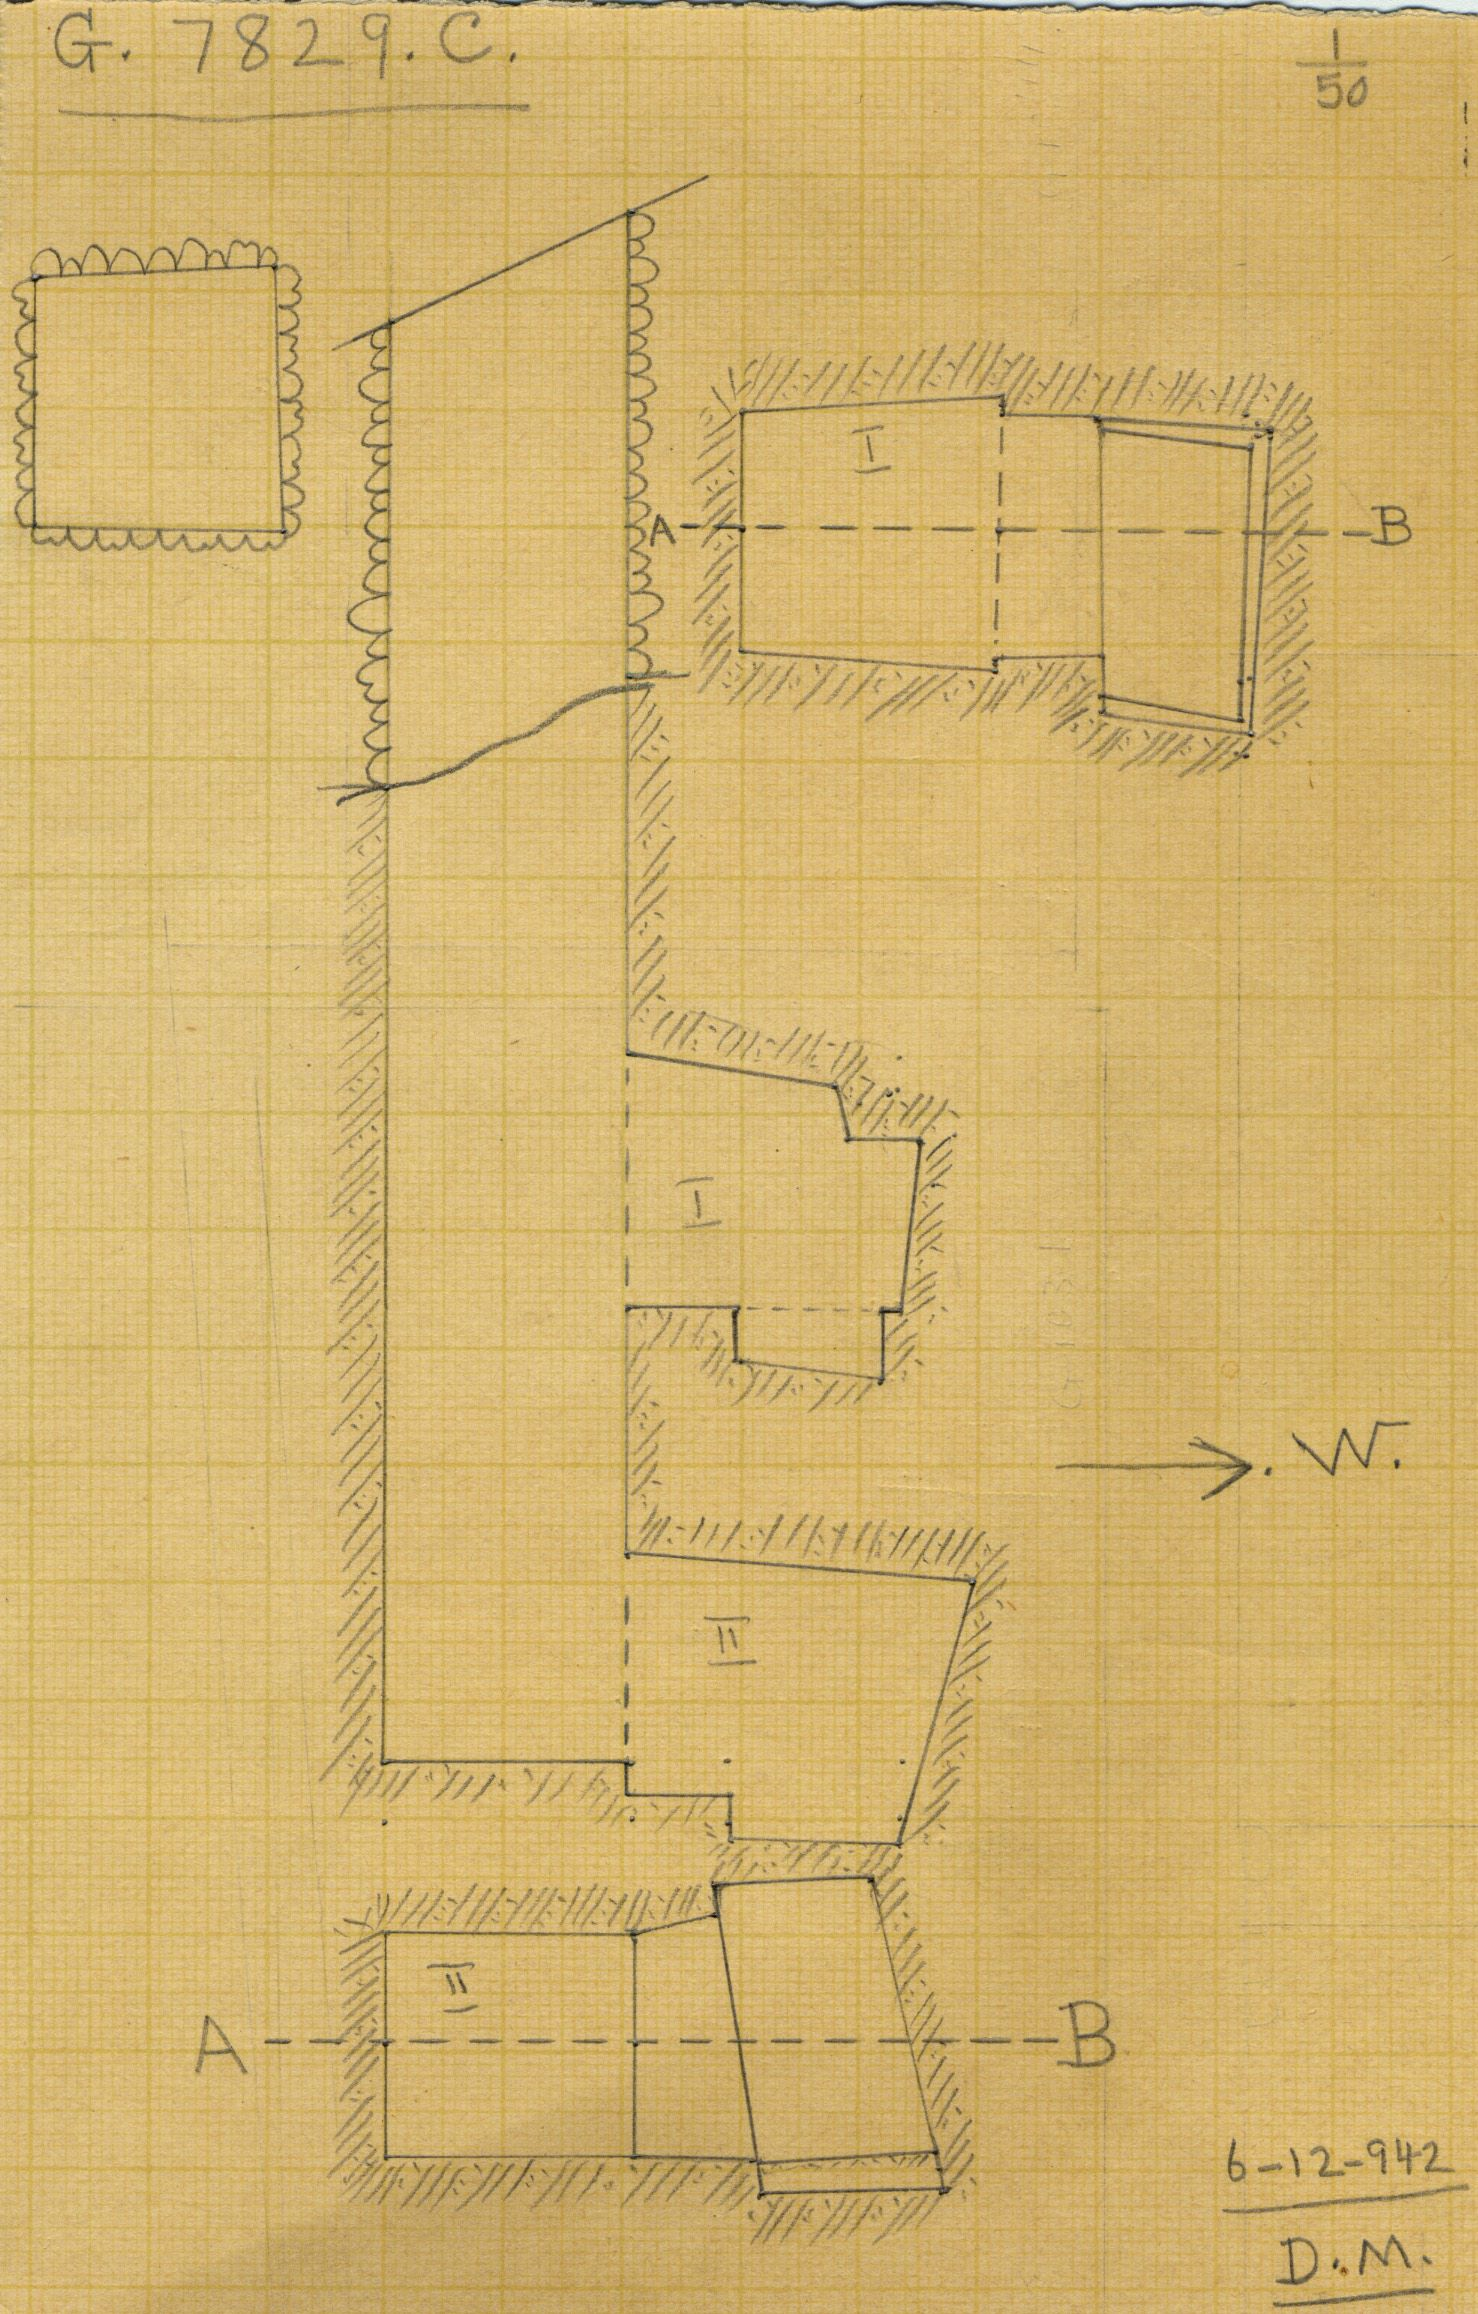 Maps and plans: G 7829, Shaft C